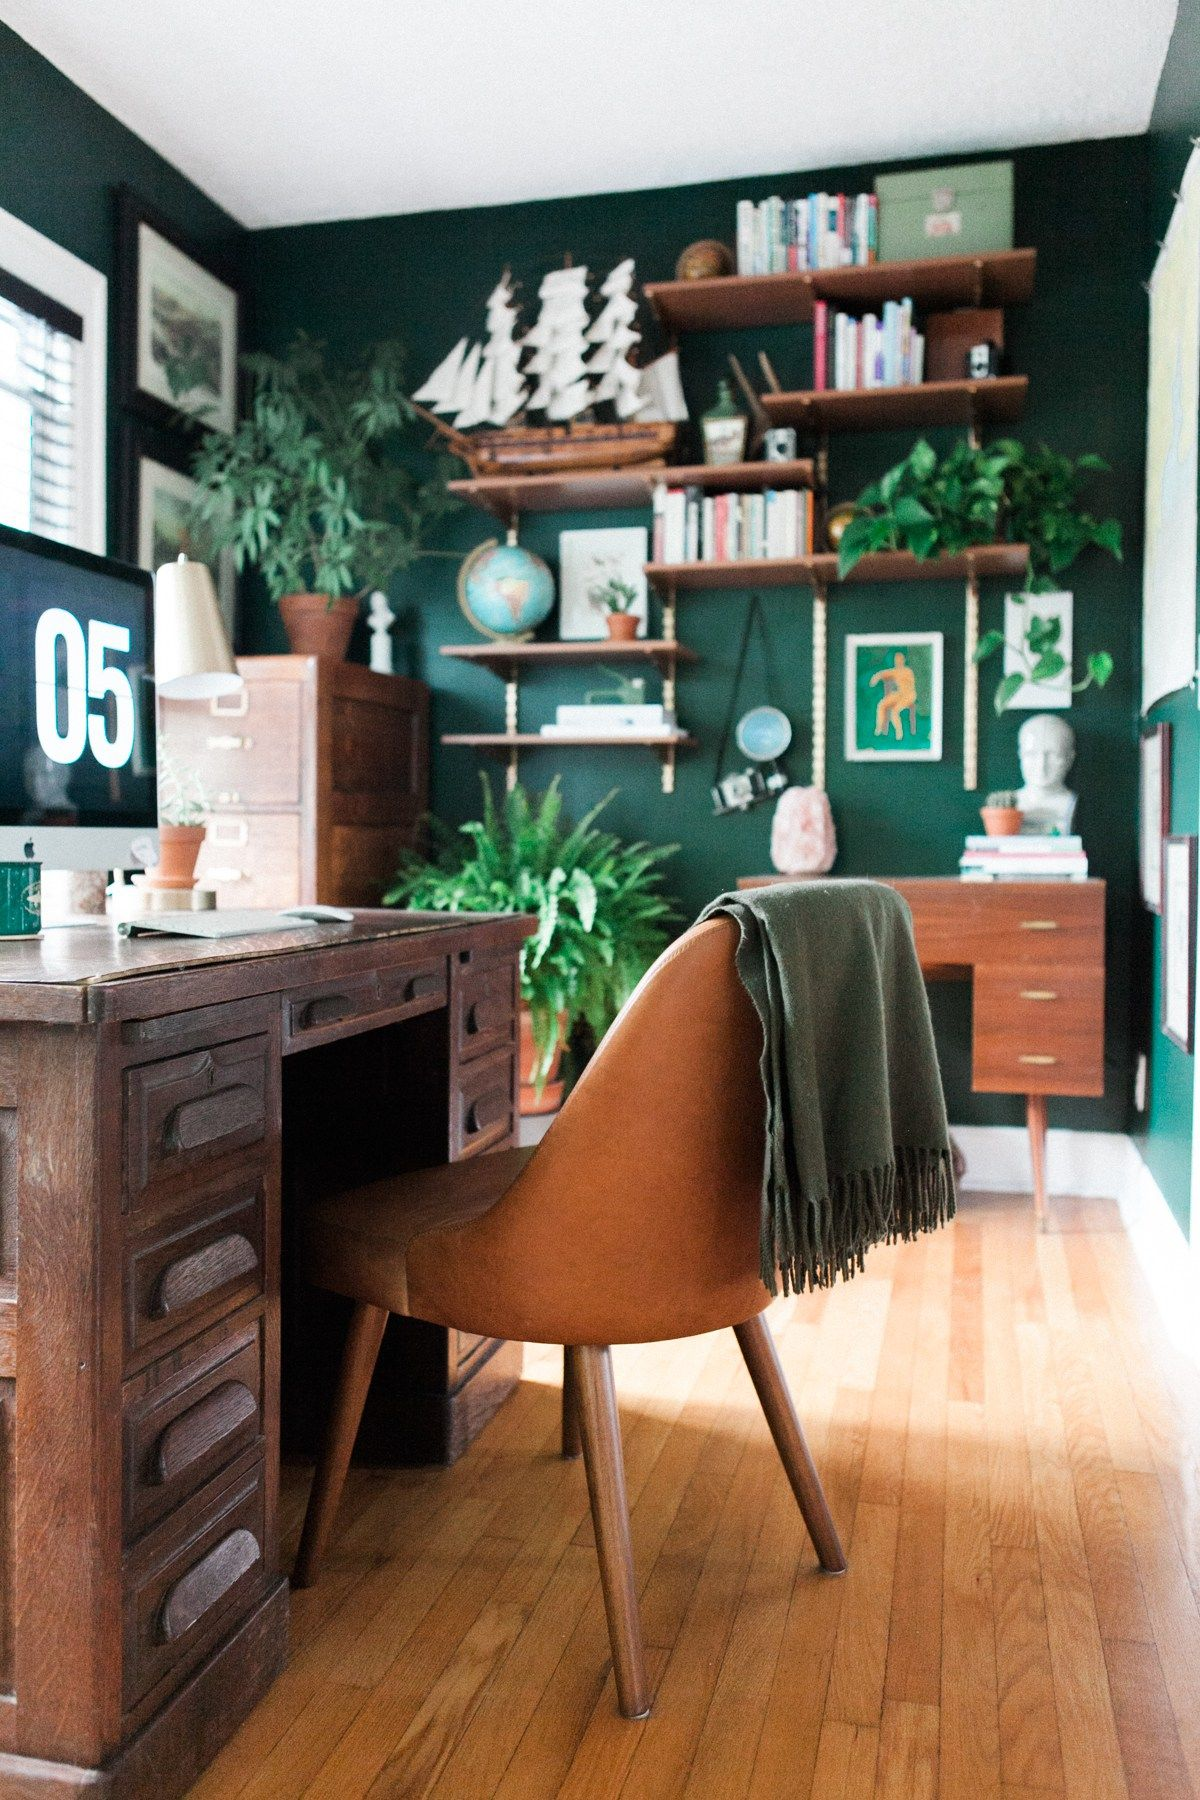 Merveilleux Stunning Teal Green Boho Earthy Office Eclectic Home Tour | Summer 2017 |  Jessica Brigham Blog | Magazine Ready For Life For Less